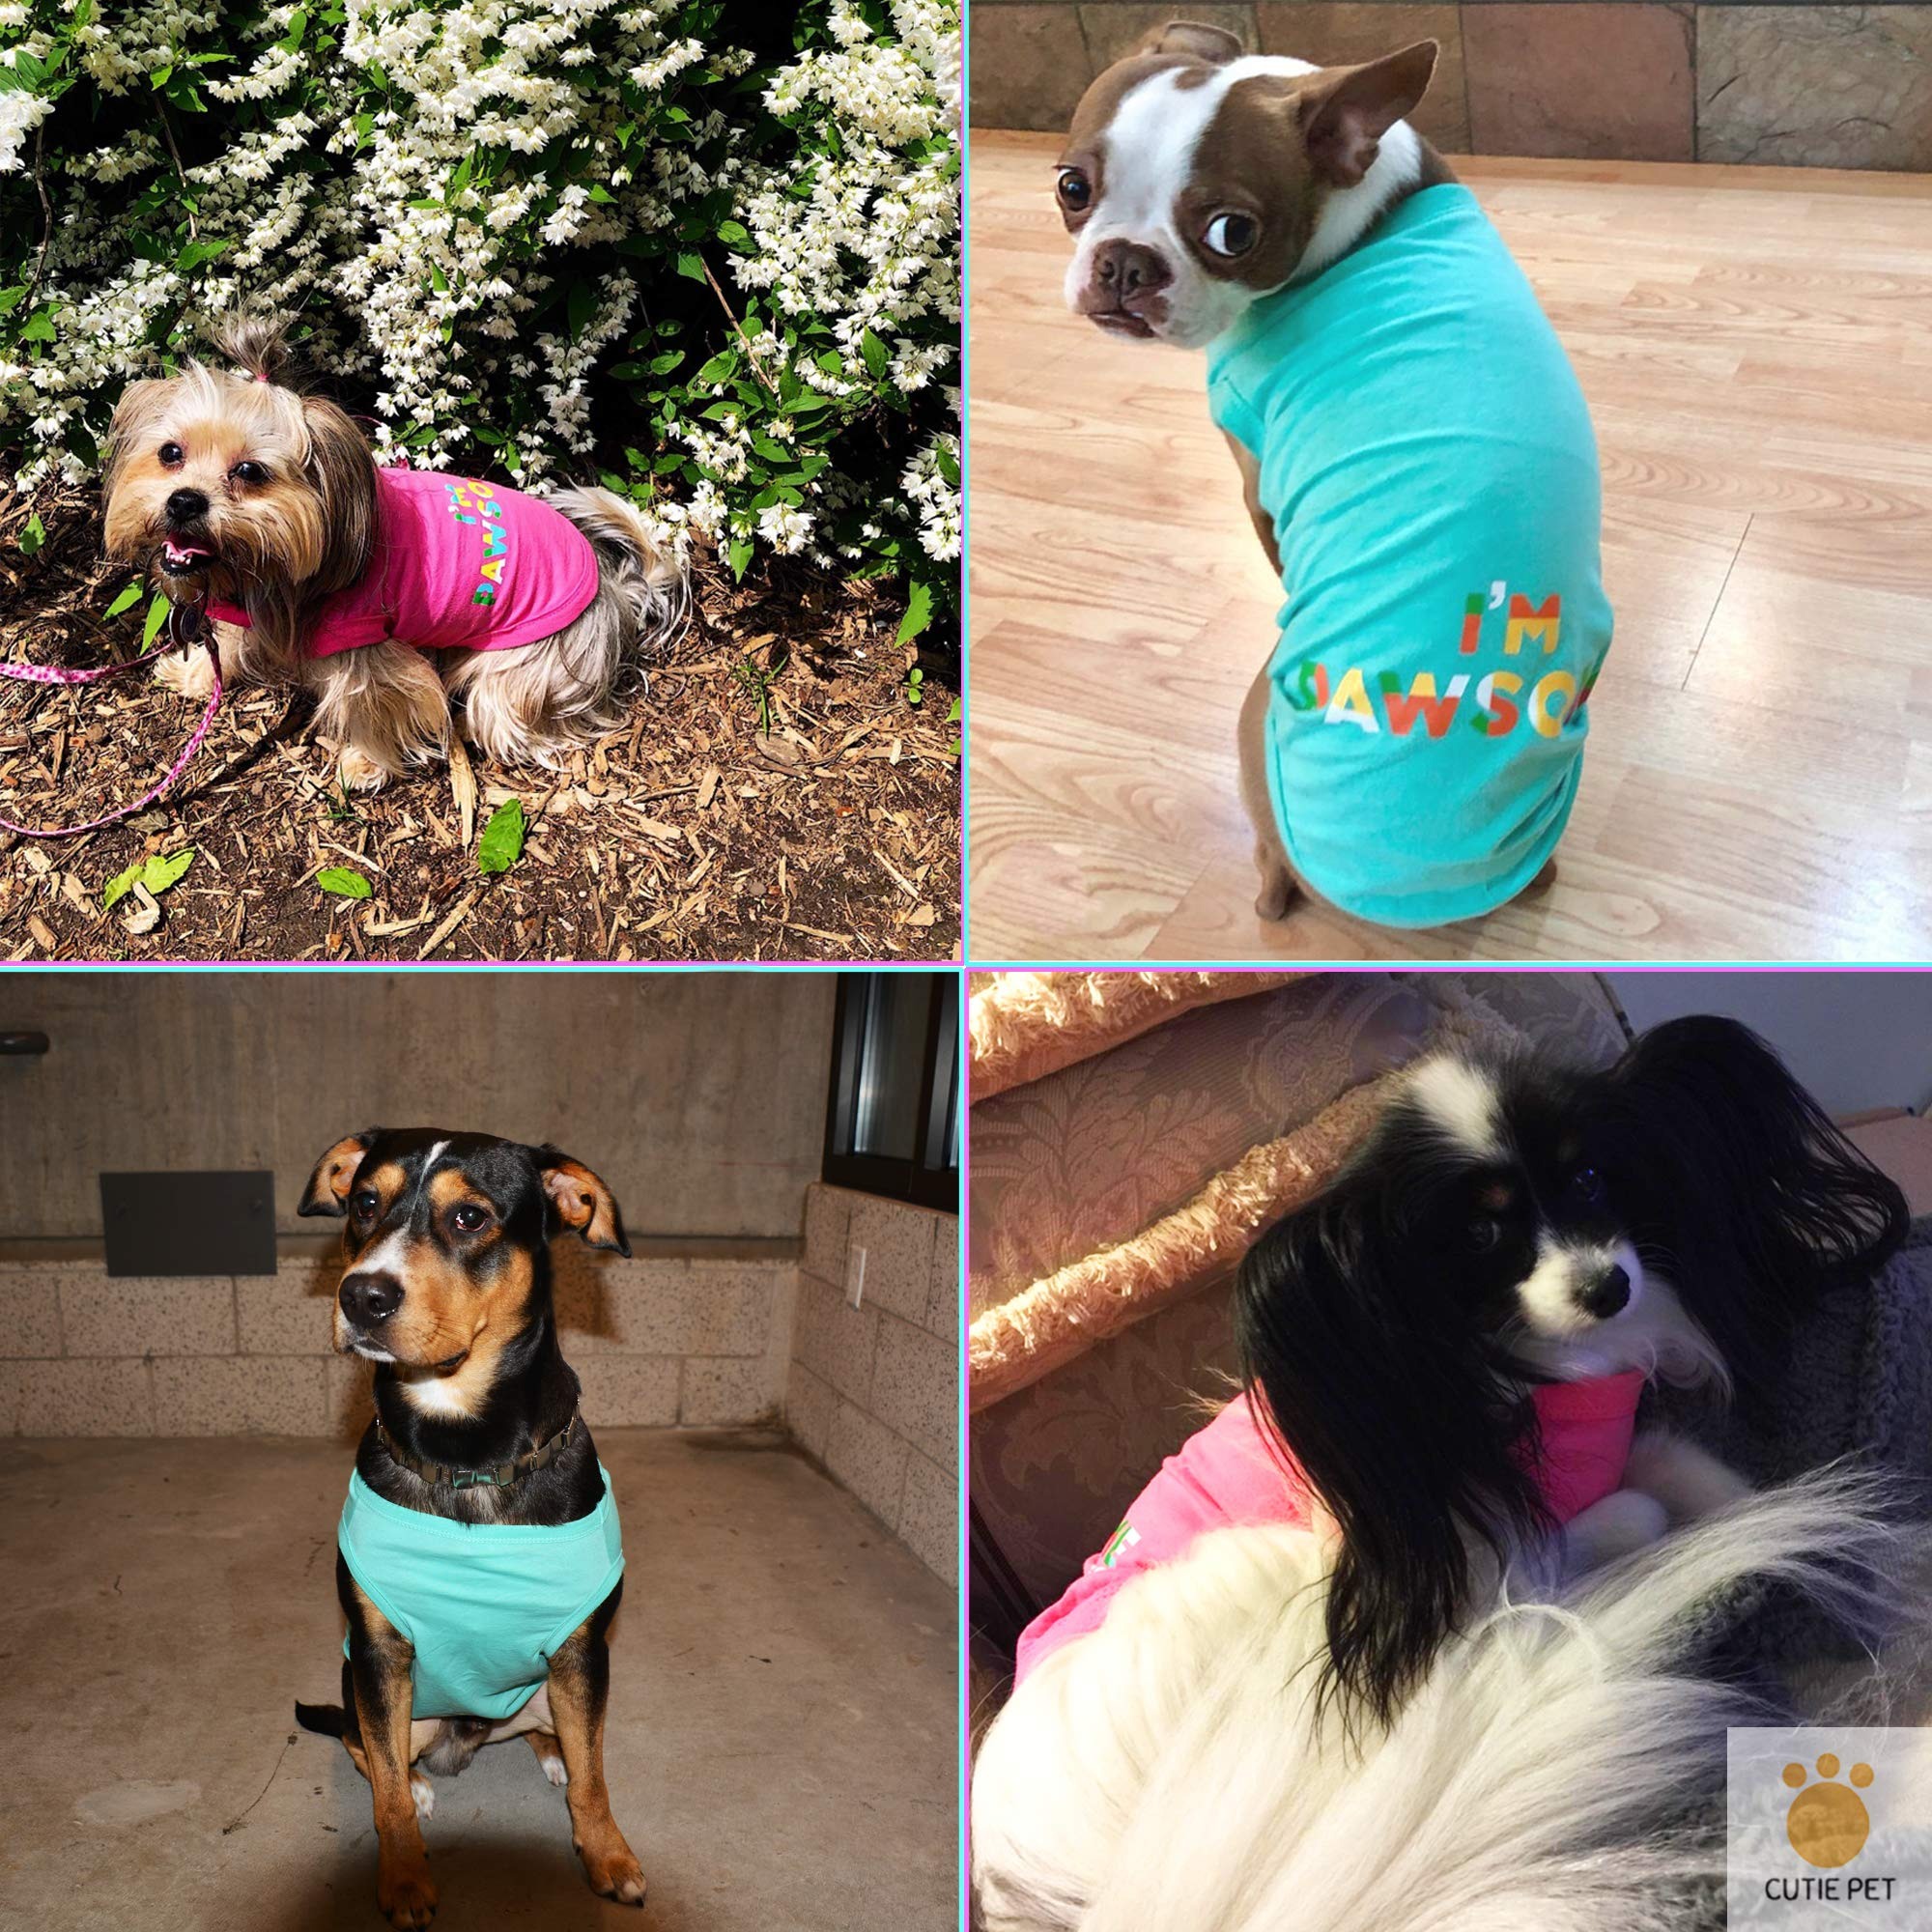 Cutie Pet Dog Clothes Dog Shirts I\'m Pawsome 100% Cotton Comfortable and Breathable for Small Medium Large Pets